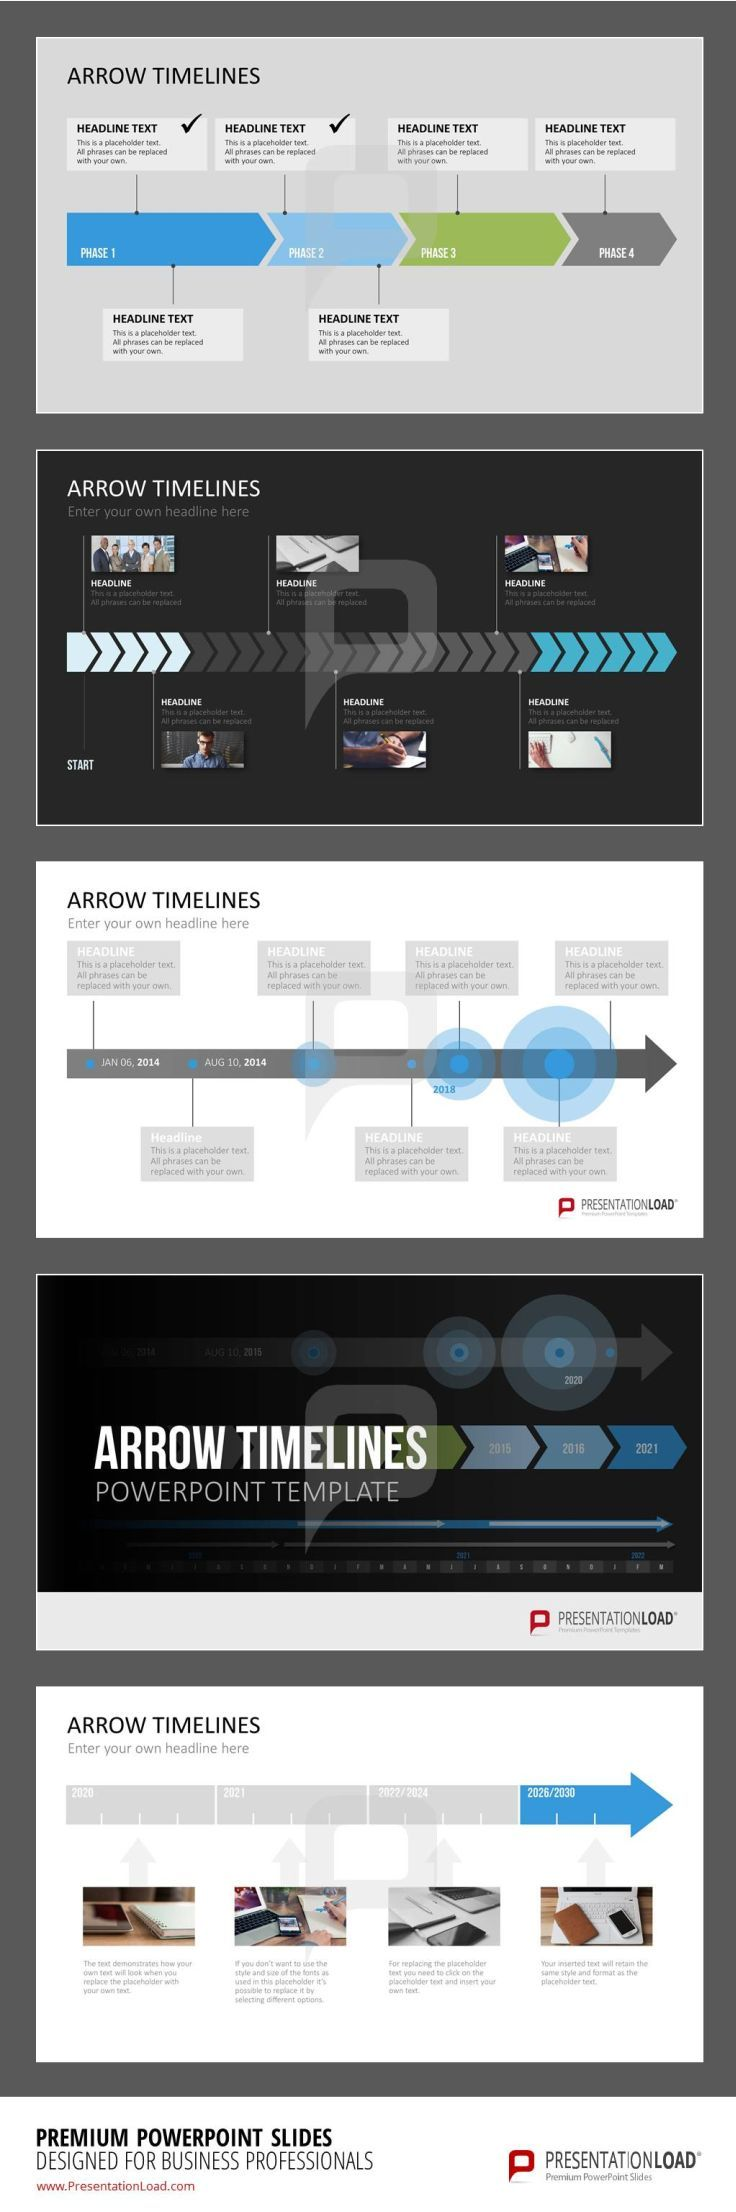 Display past and future events with our graphics and #GanttCharts in arrow shapes. Clearly organize chronological events with our #arrow #timeline graphics.